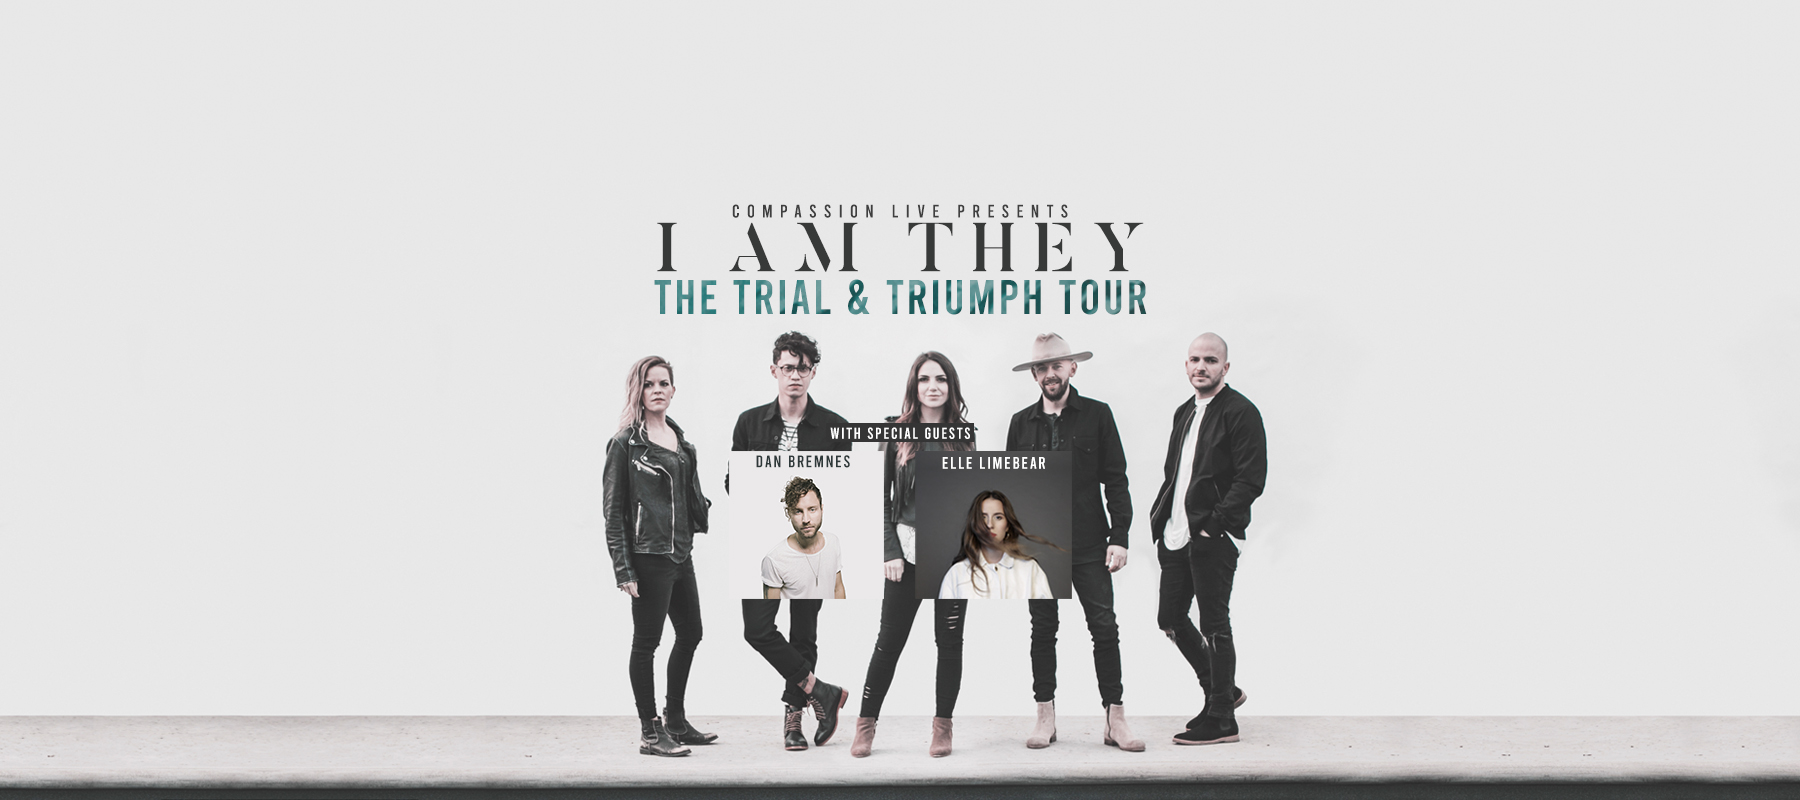 The Trial & Triumph Tour with I AM THEY, Dan Bremnes, and Elle Limebear logo